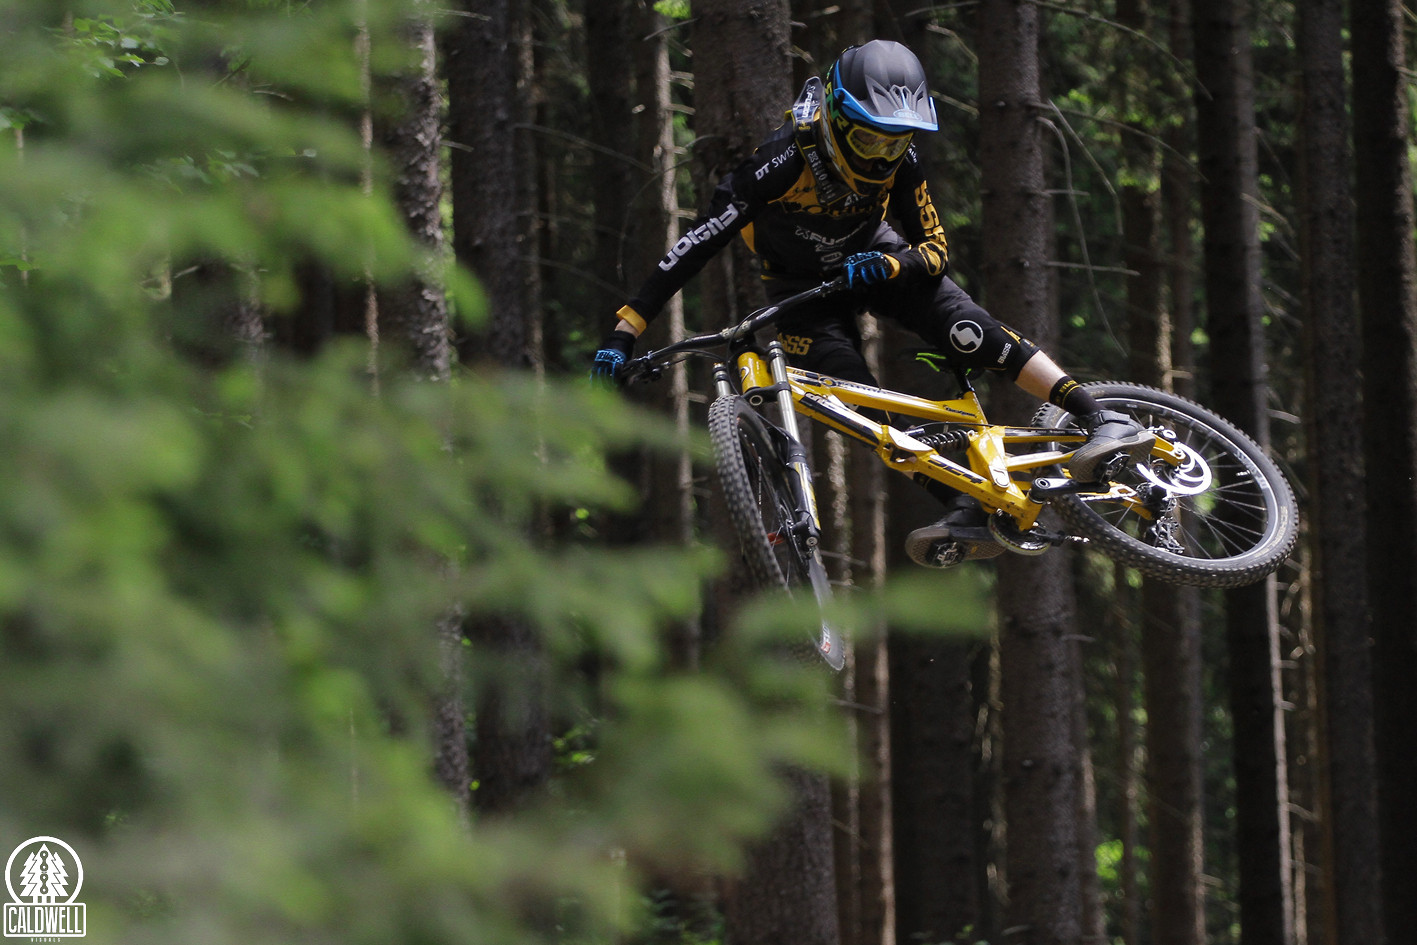 Cracking the whip - CaldwellVisuals - Mountain Biking Pictures - Vital MTB